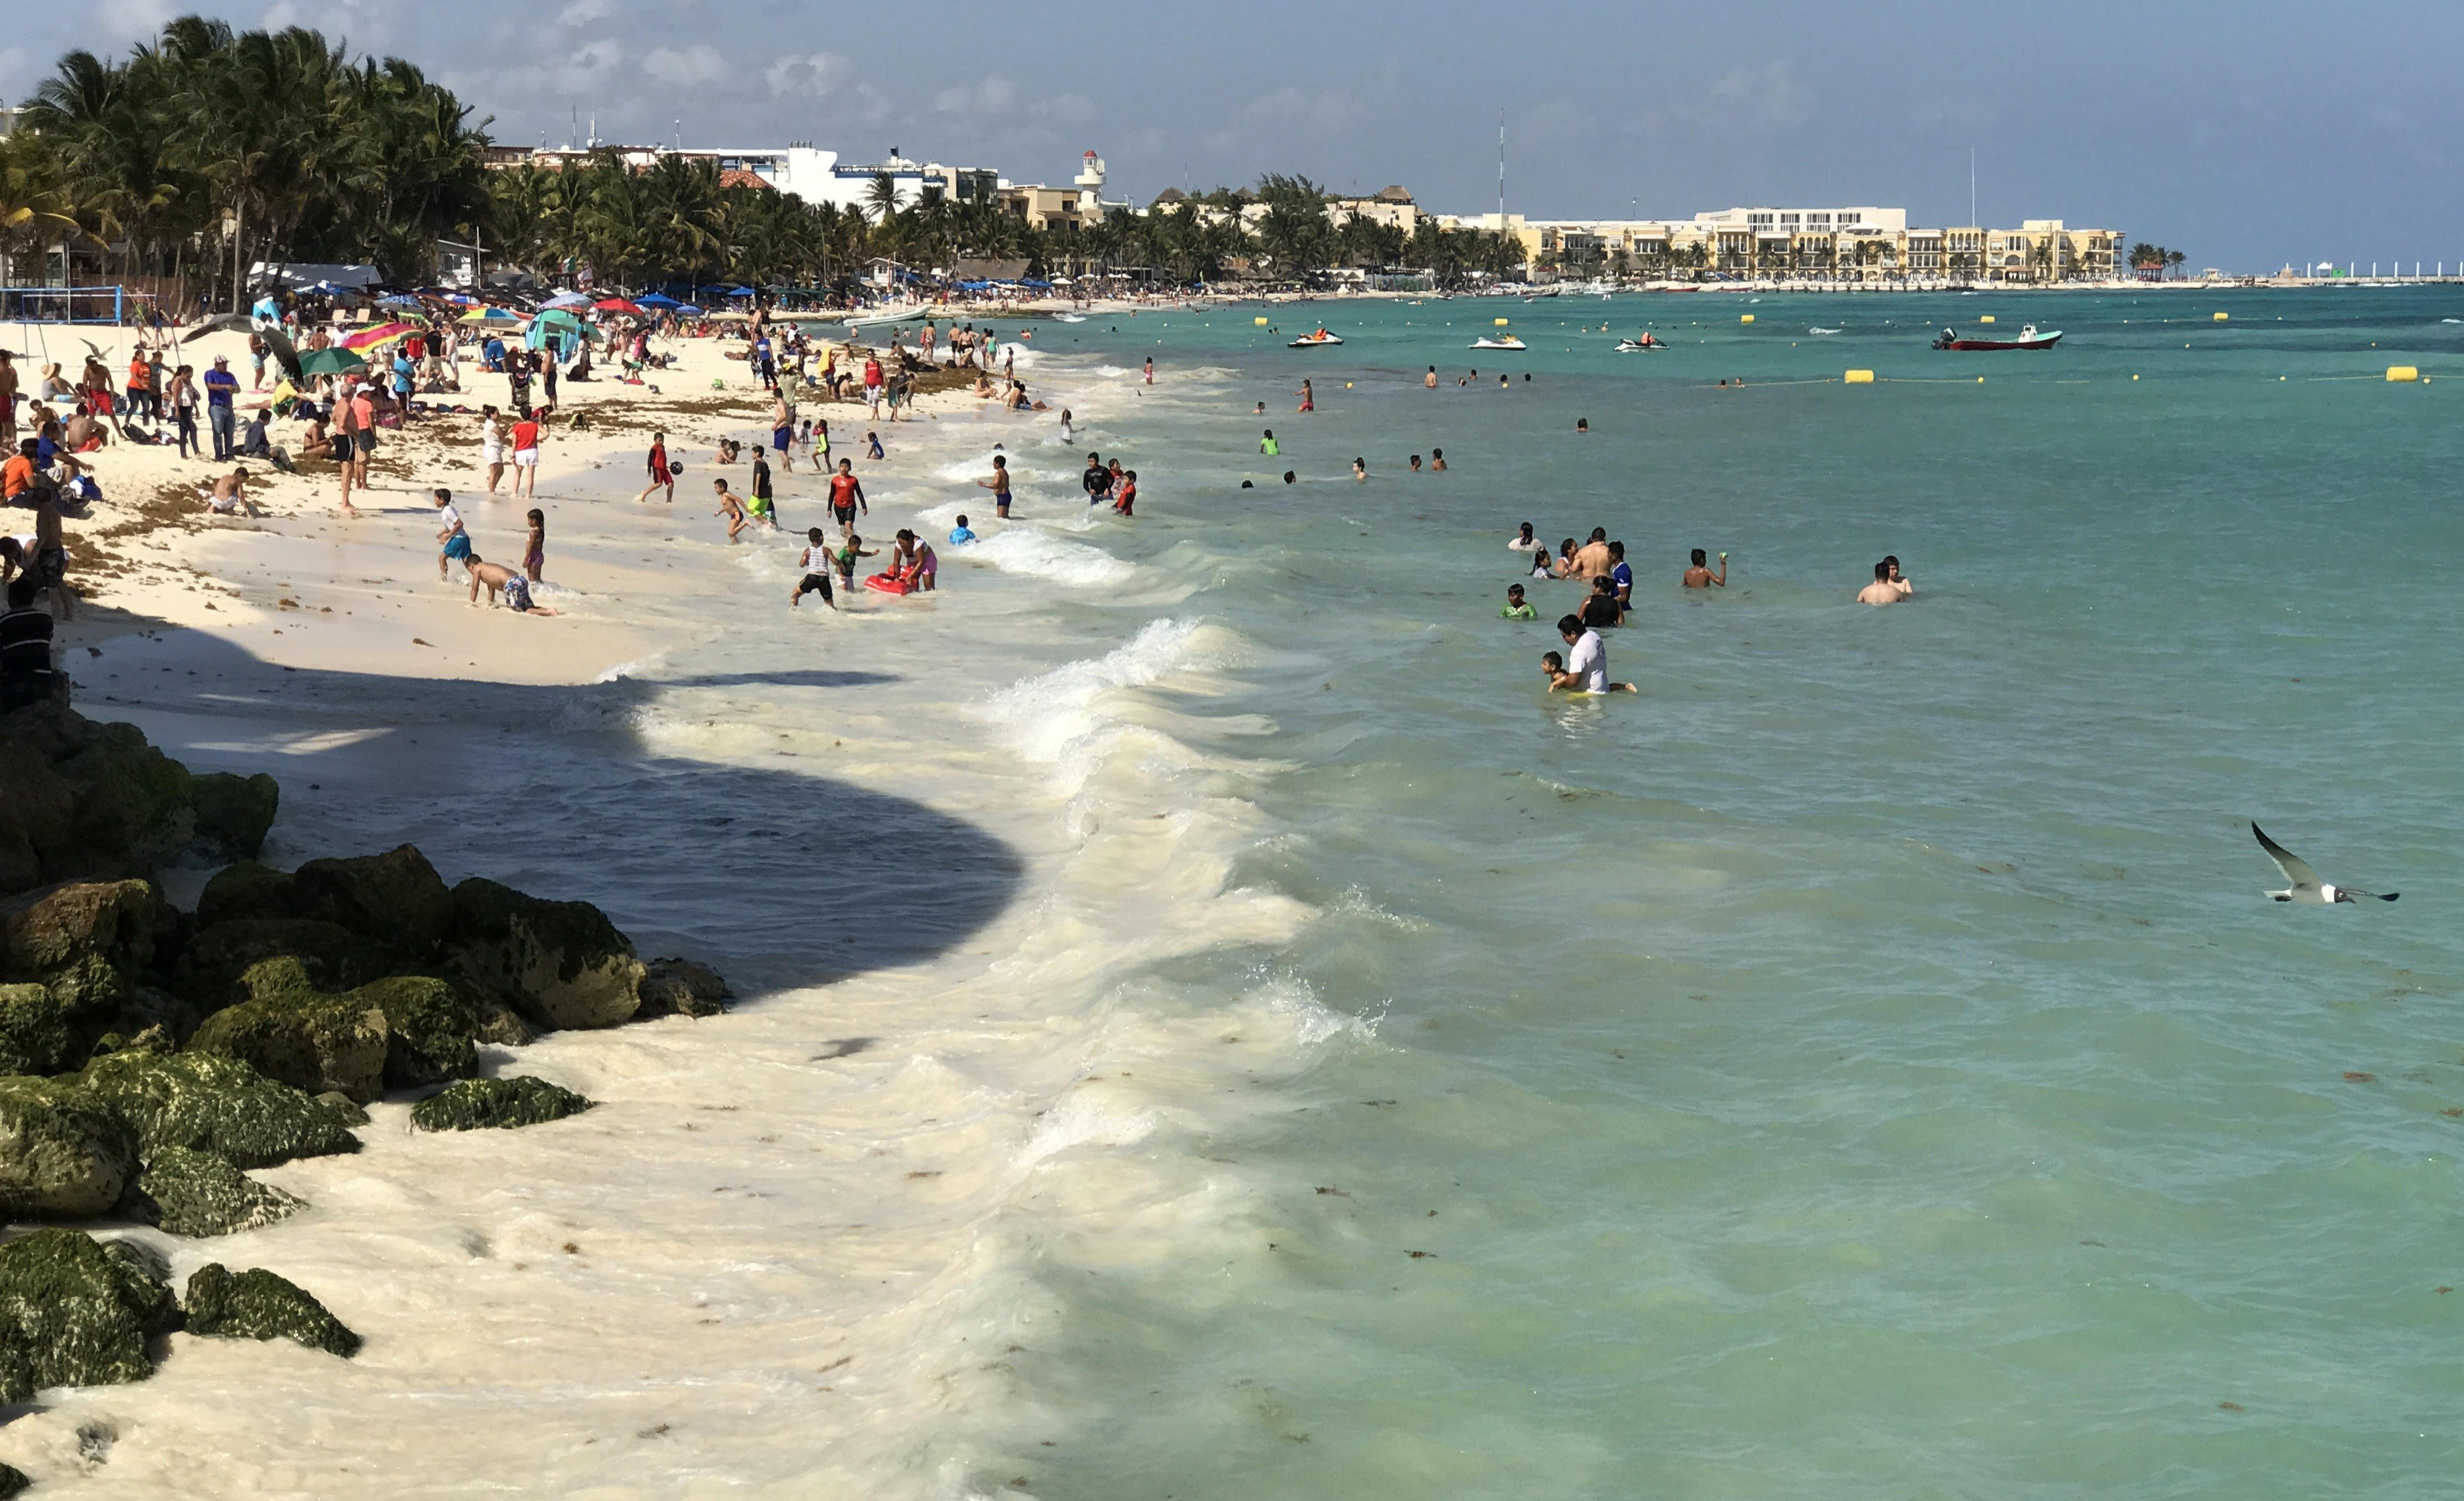 State Department Issues Travel Warning for Mexican Resort Town After ...